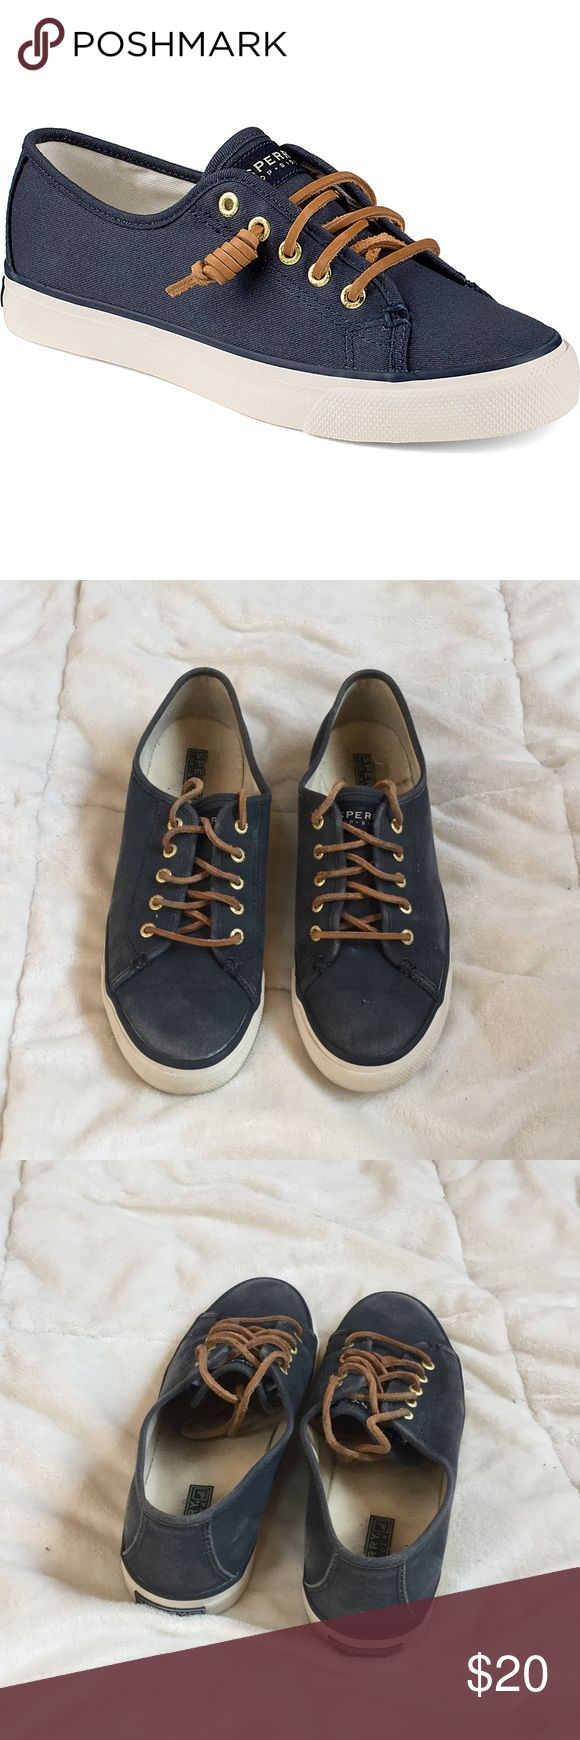 ✔️ Blue sherry seacoast sneakers ✔️ Used but cheap! Sperry Top-Sider Shoes Sneakers